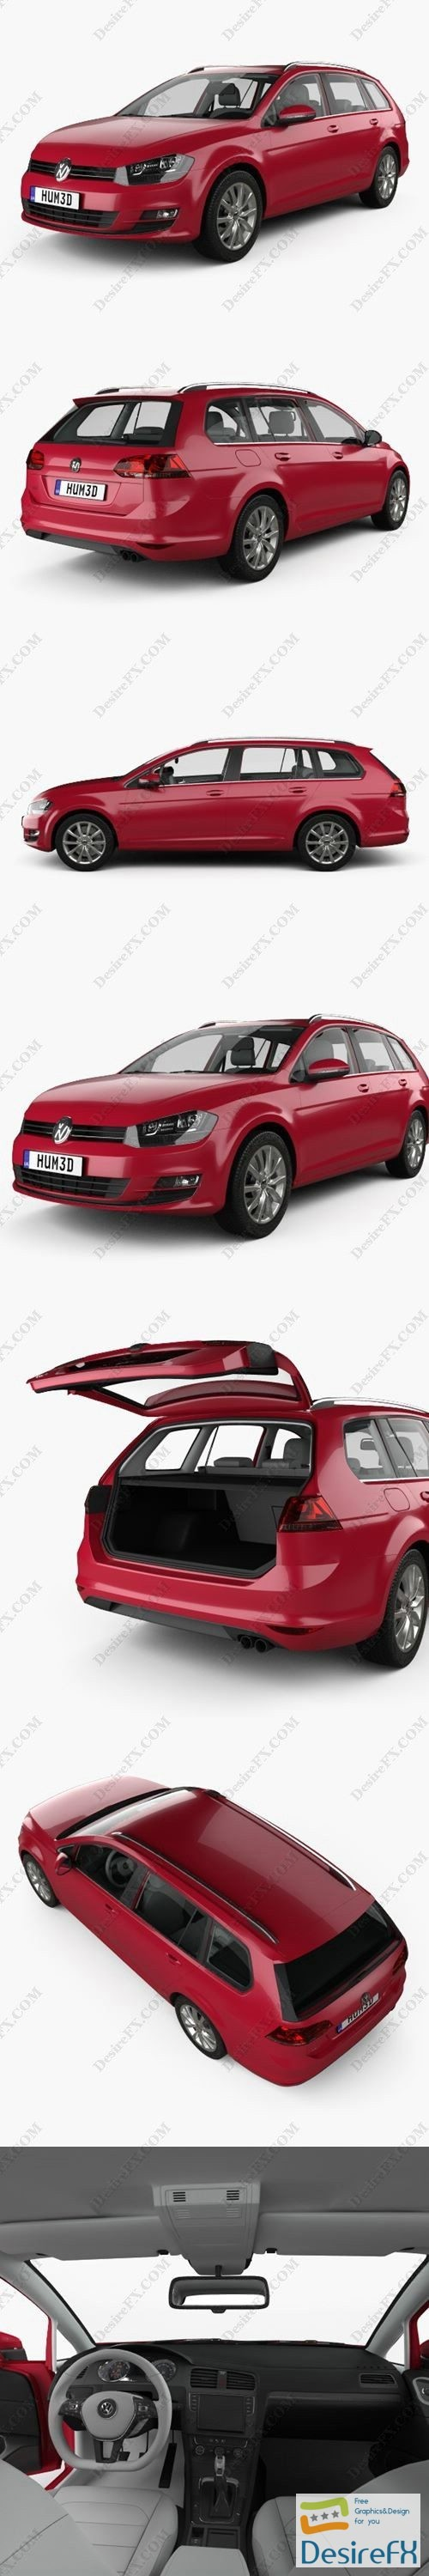 3d-models - Volkswagen Golf variant with HQ interior 2014 3D Model